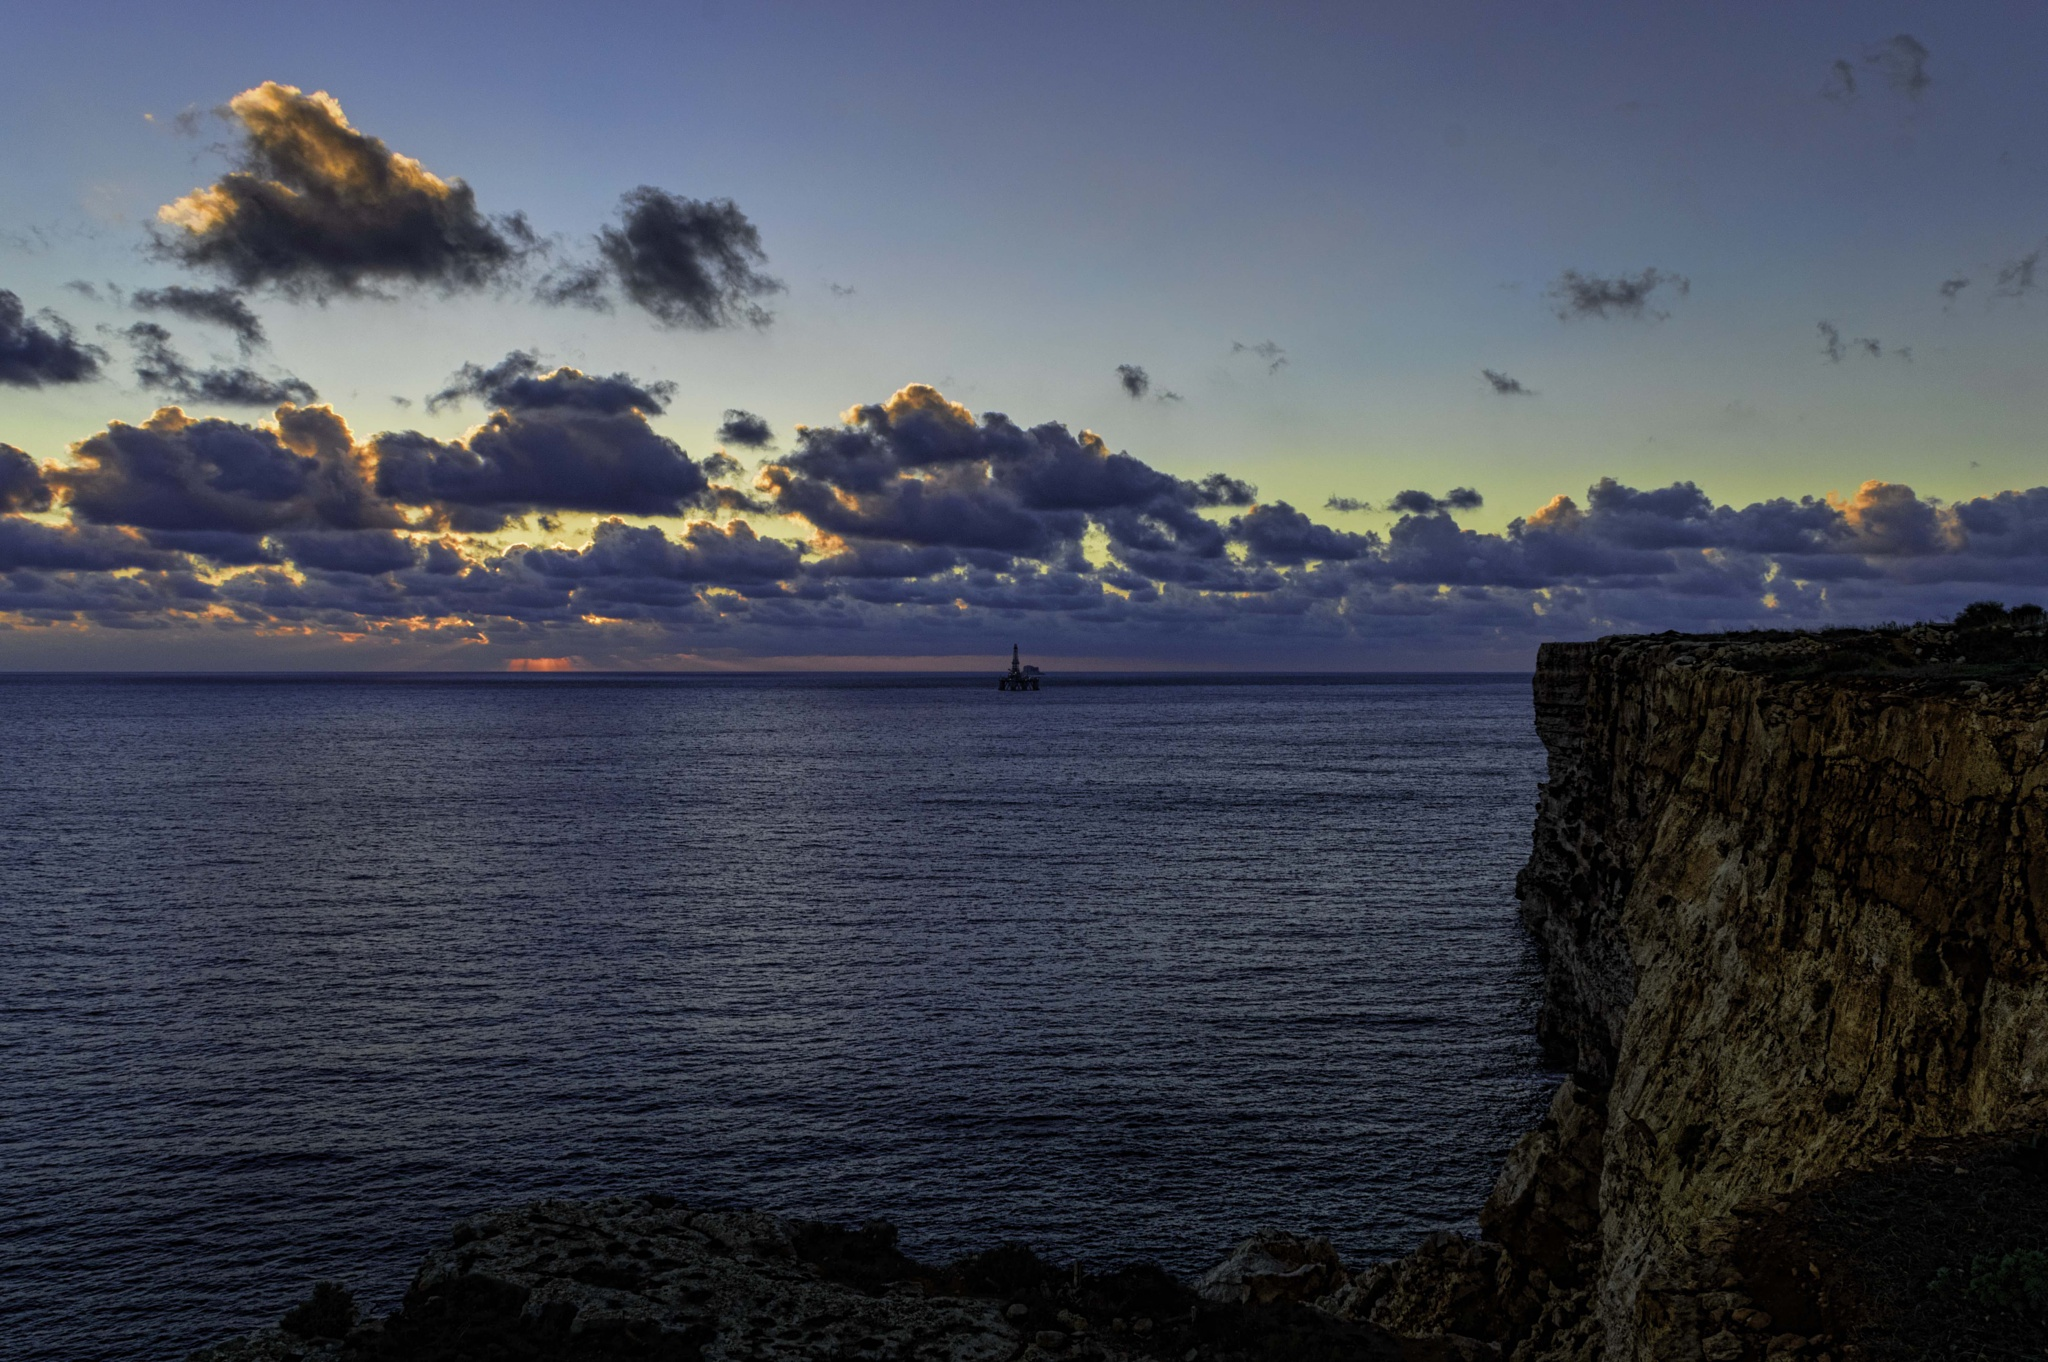 Twilight by peter.busuttil